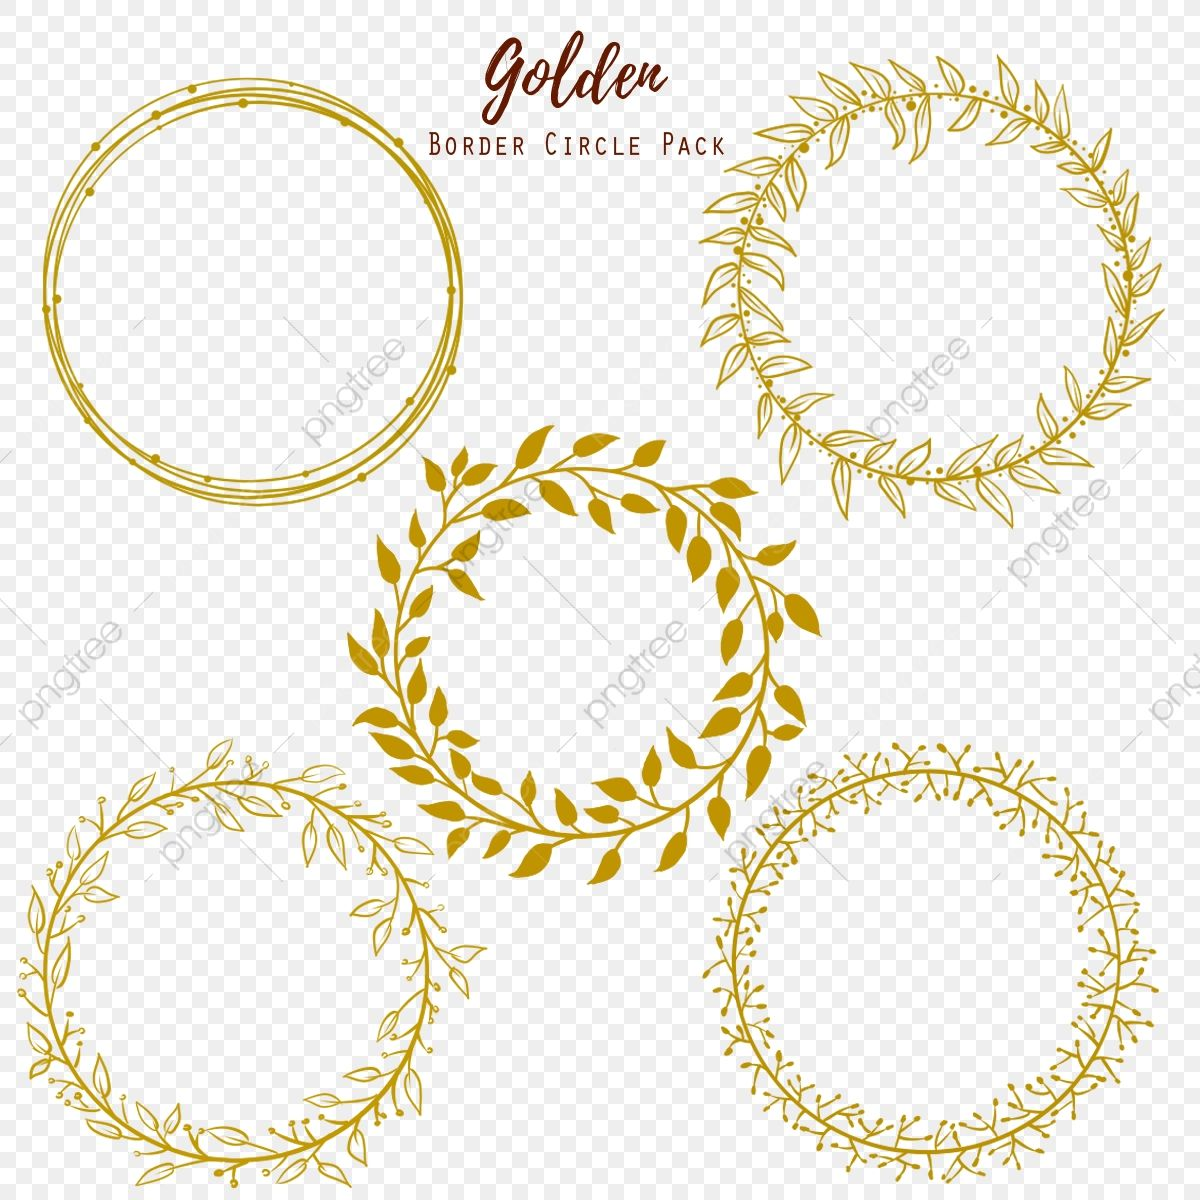 Download This Golden Circle Gold Golden Png Clipart Image With Transparent Background Or Psd File Fo Circle Graphic Design Floral Border Design Golden Circle